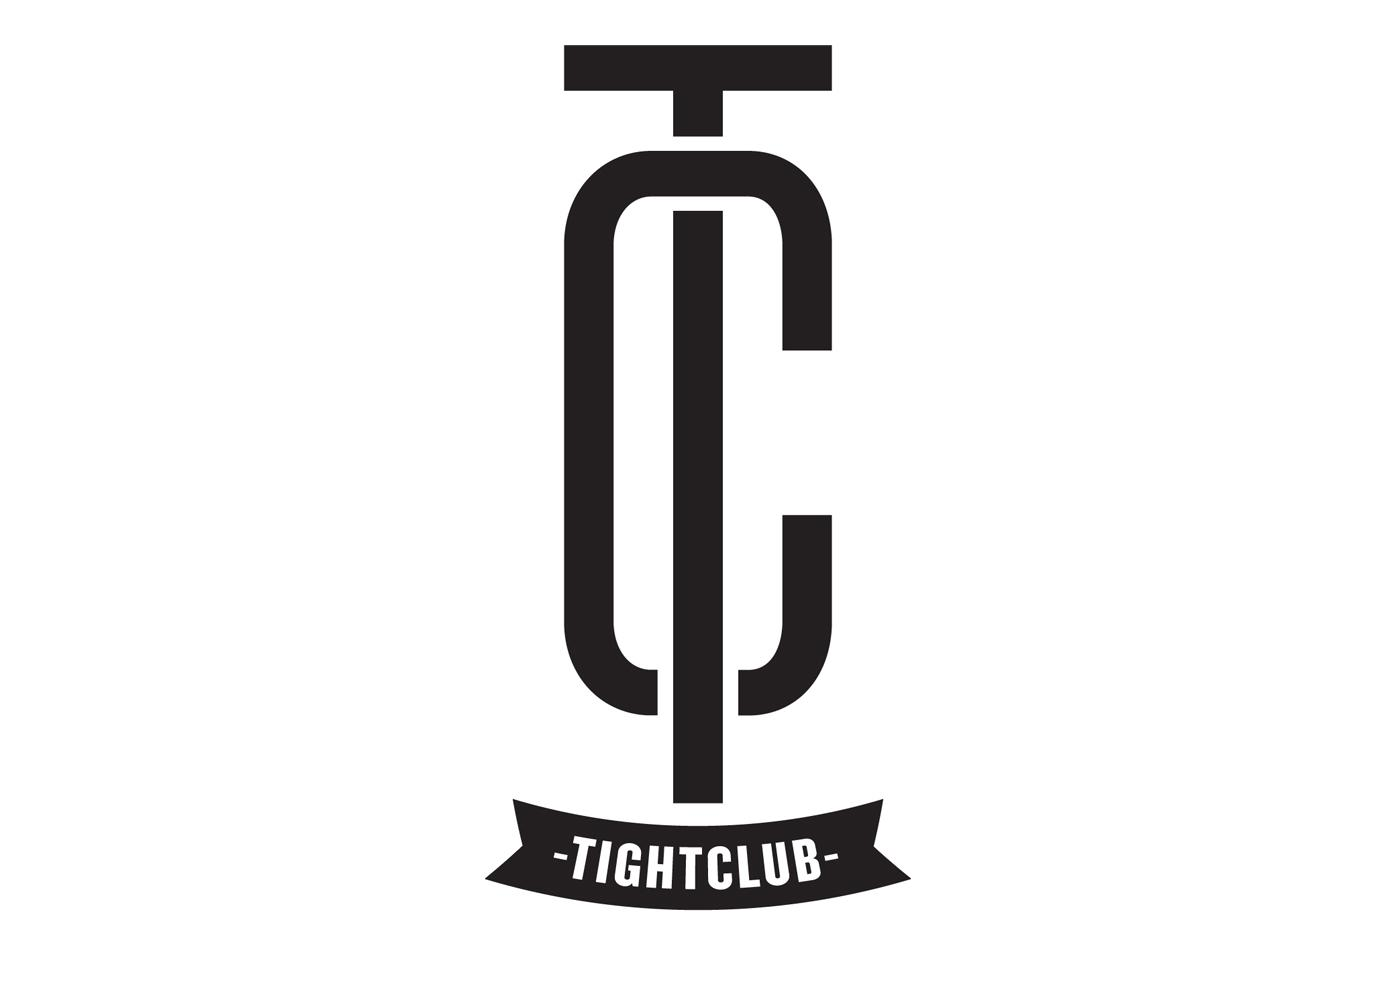 Tight Club Logo